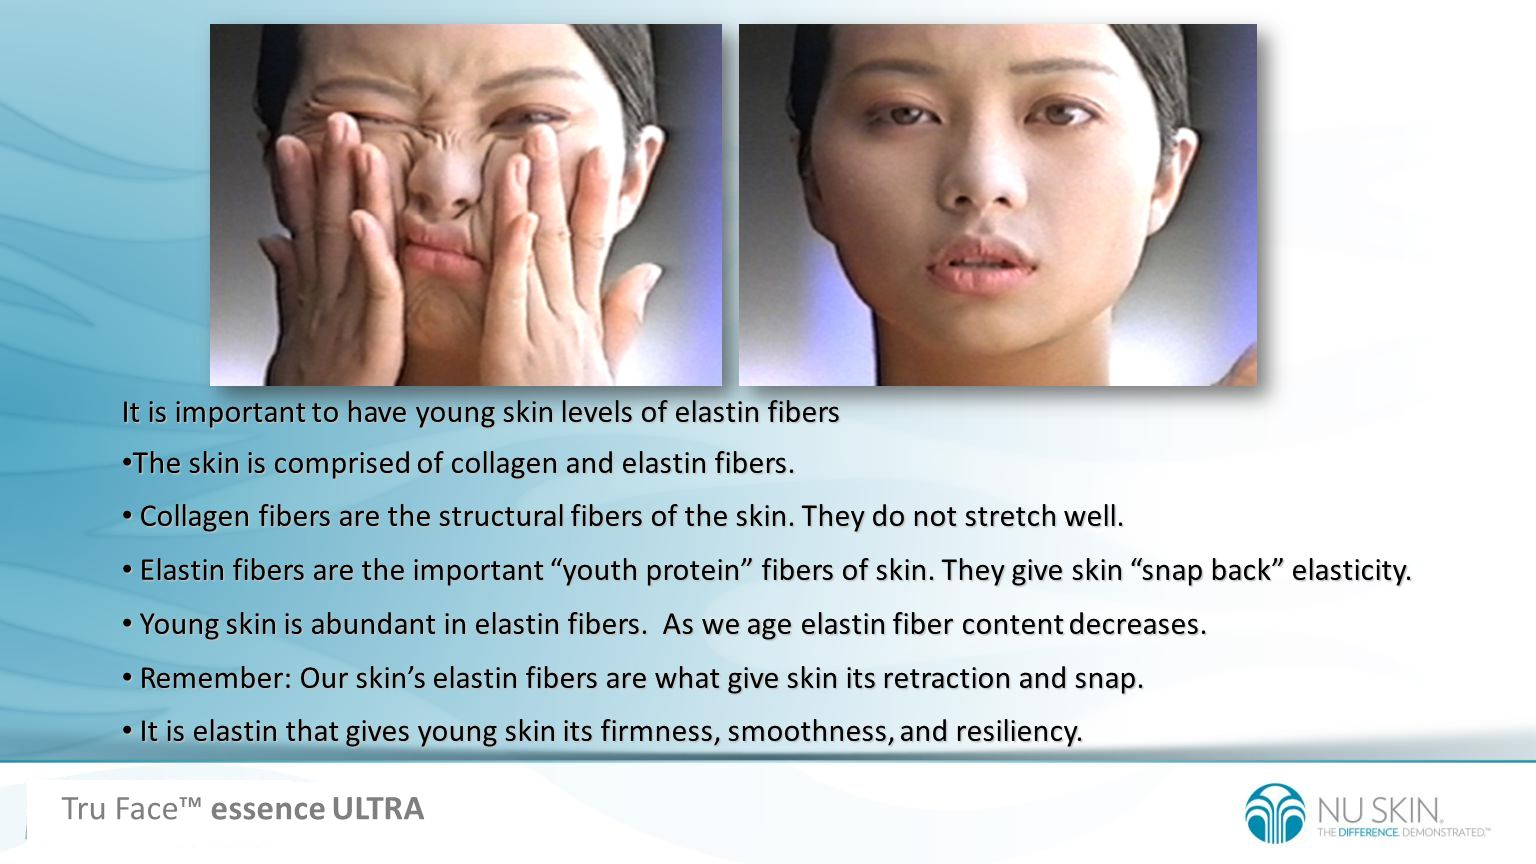 It is important to have young skin levels of elastin fibers The skin is comprised of collagen and elastin fibers. The skin is comprised of collagen an